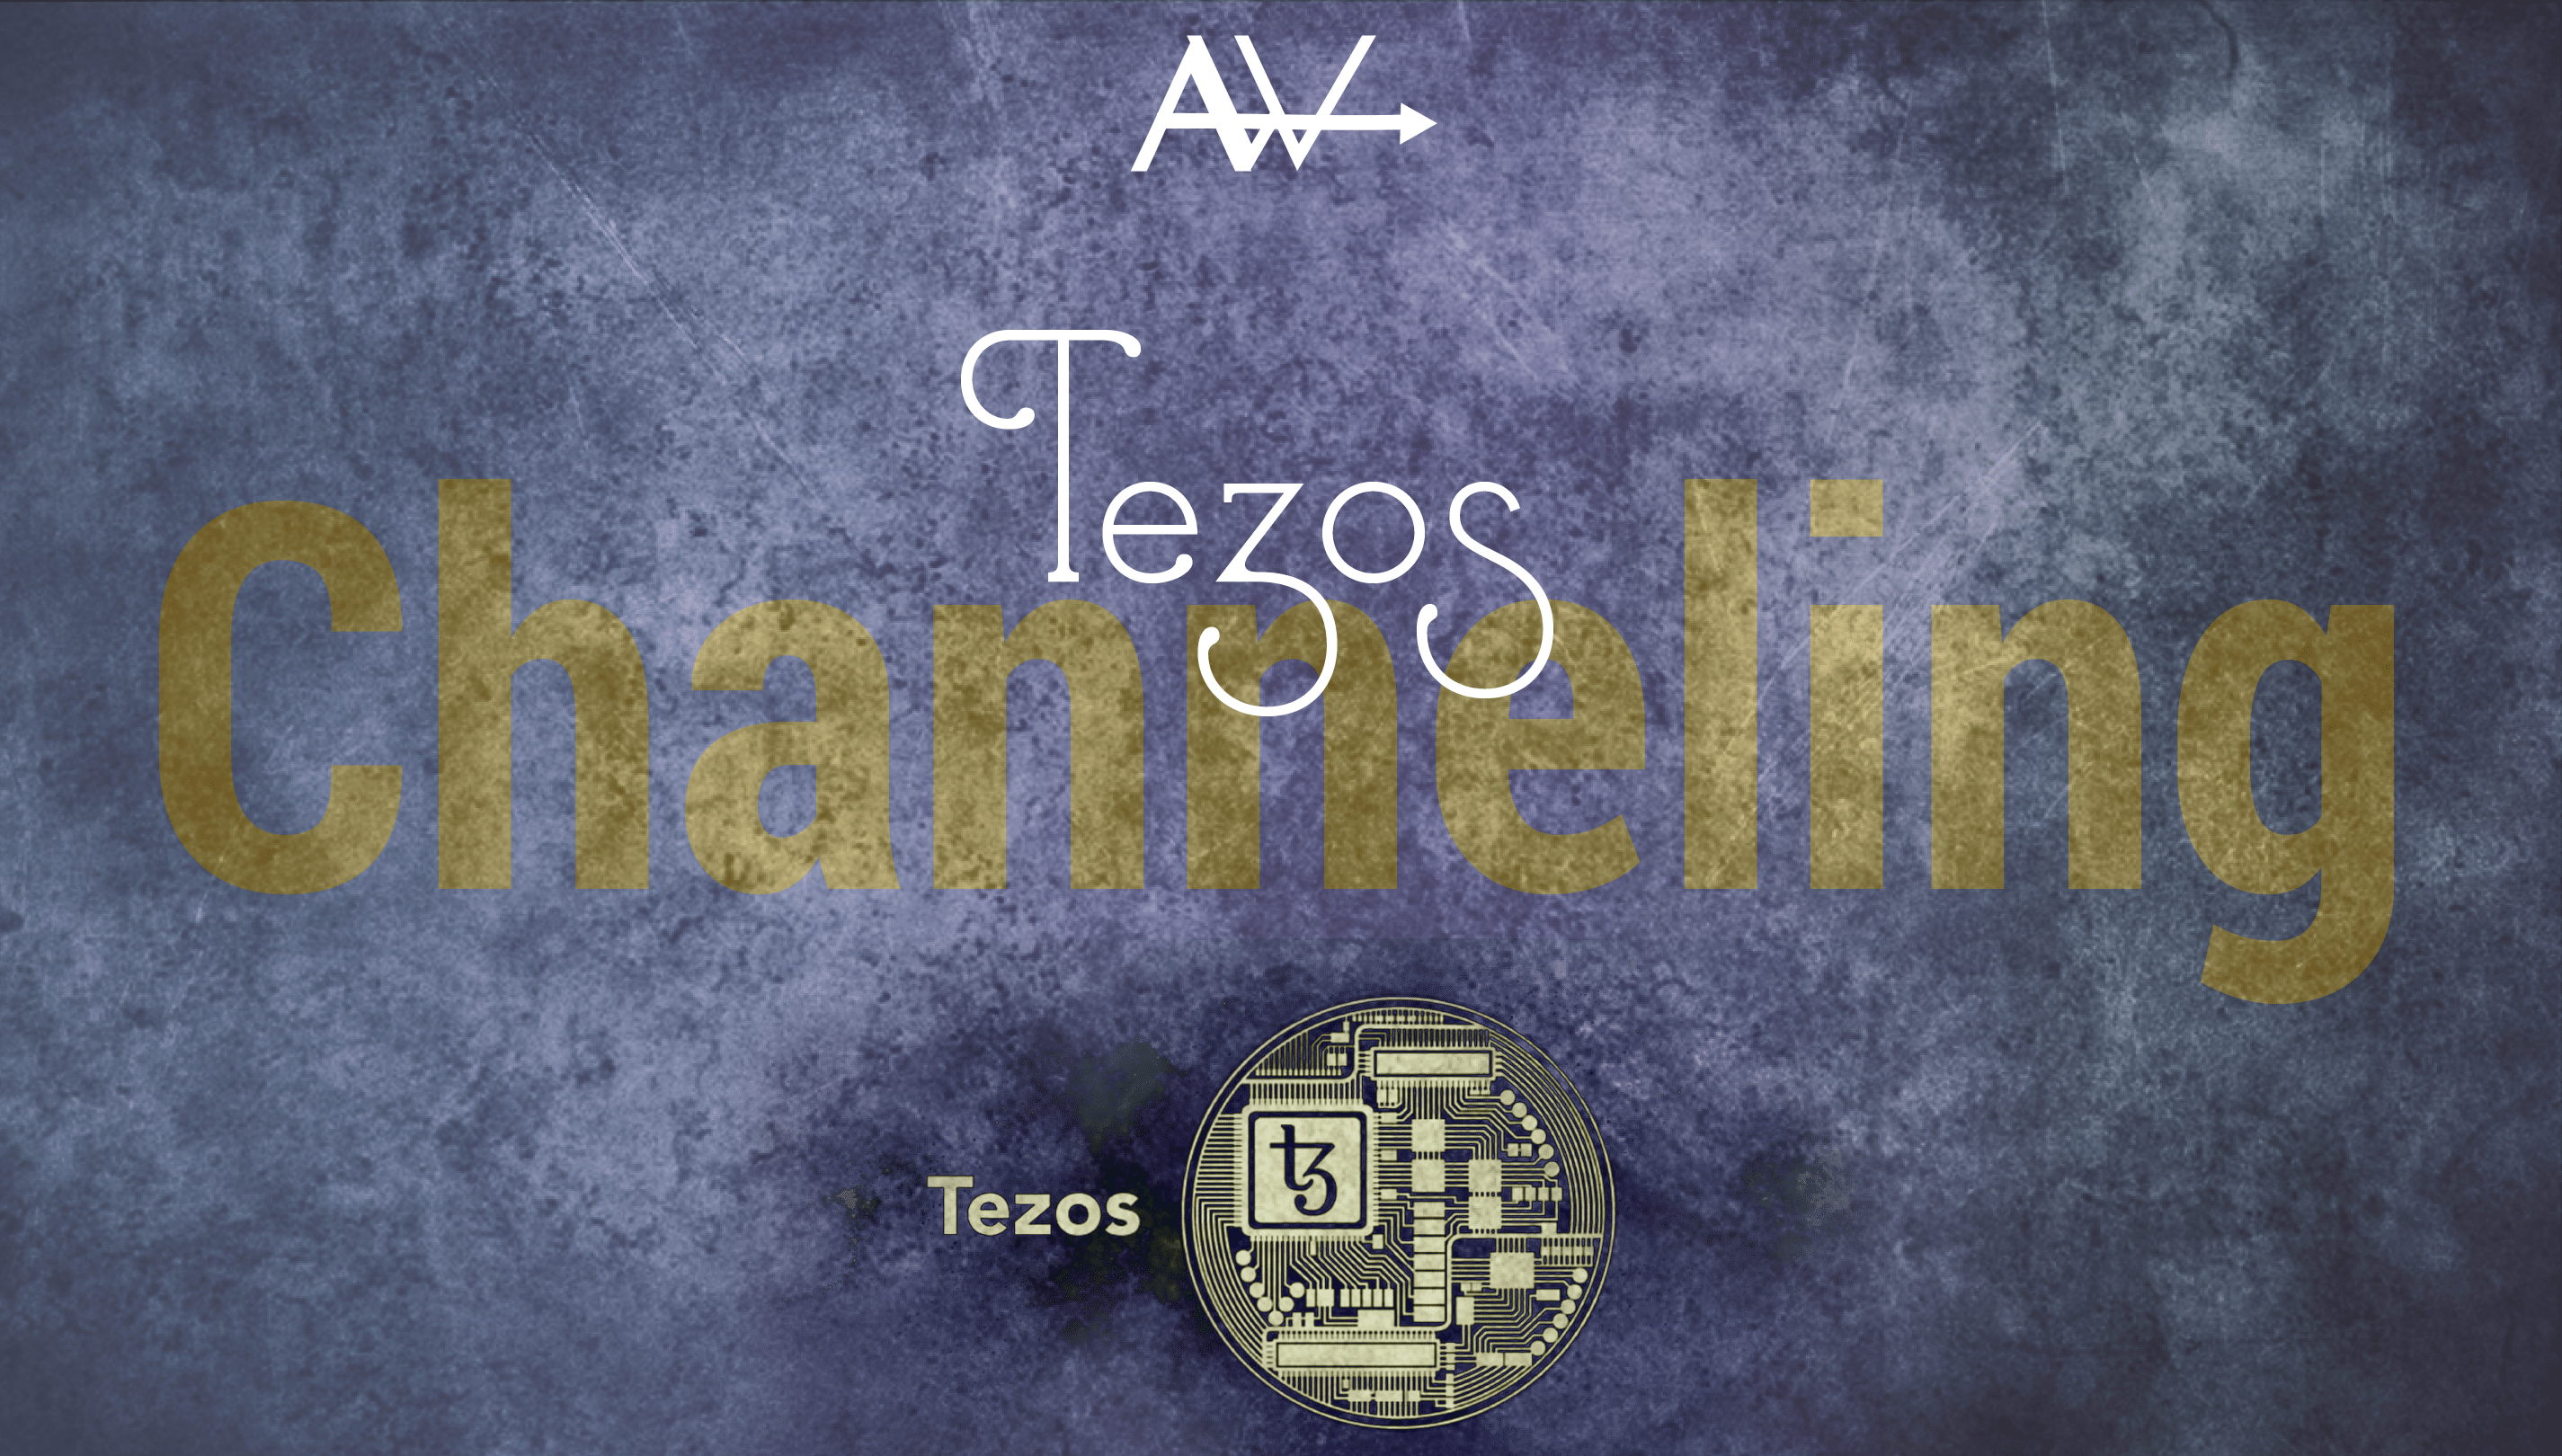 TEZOS CHANELLING – REPOST/UPDATE From Patreon